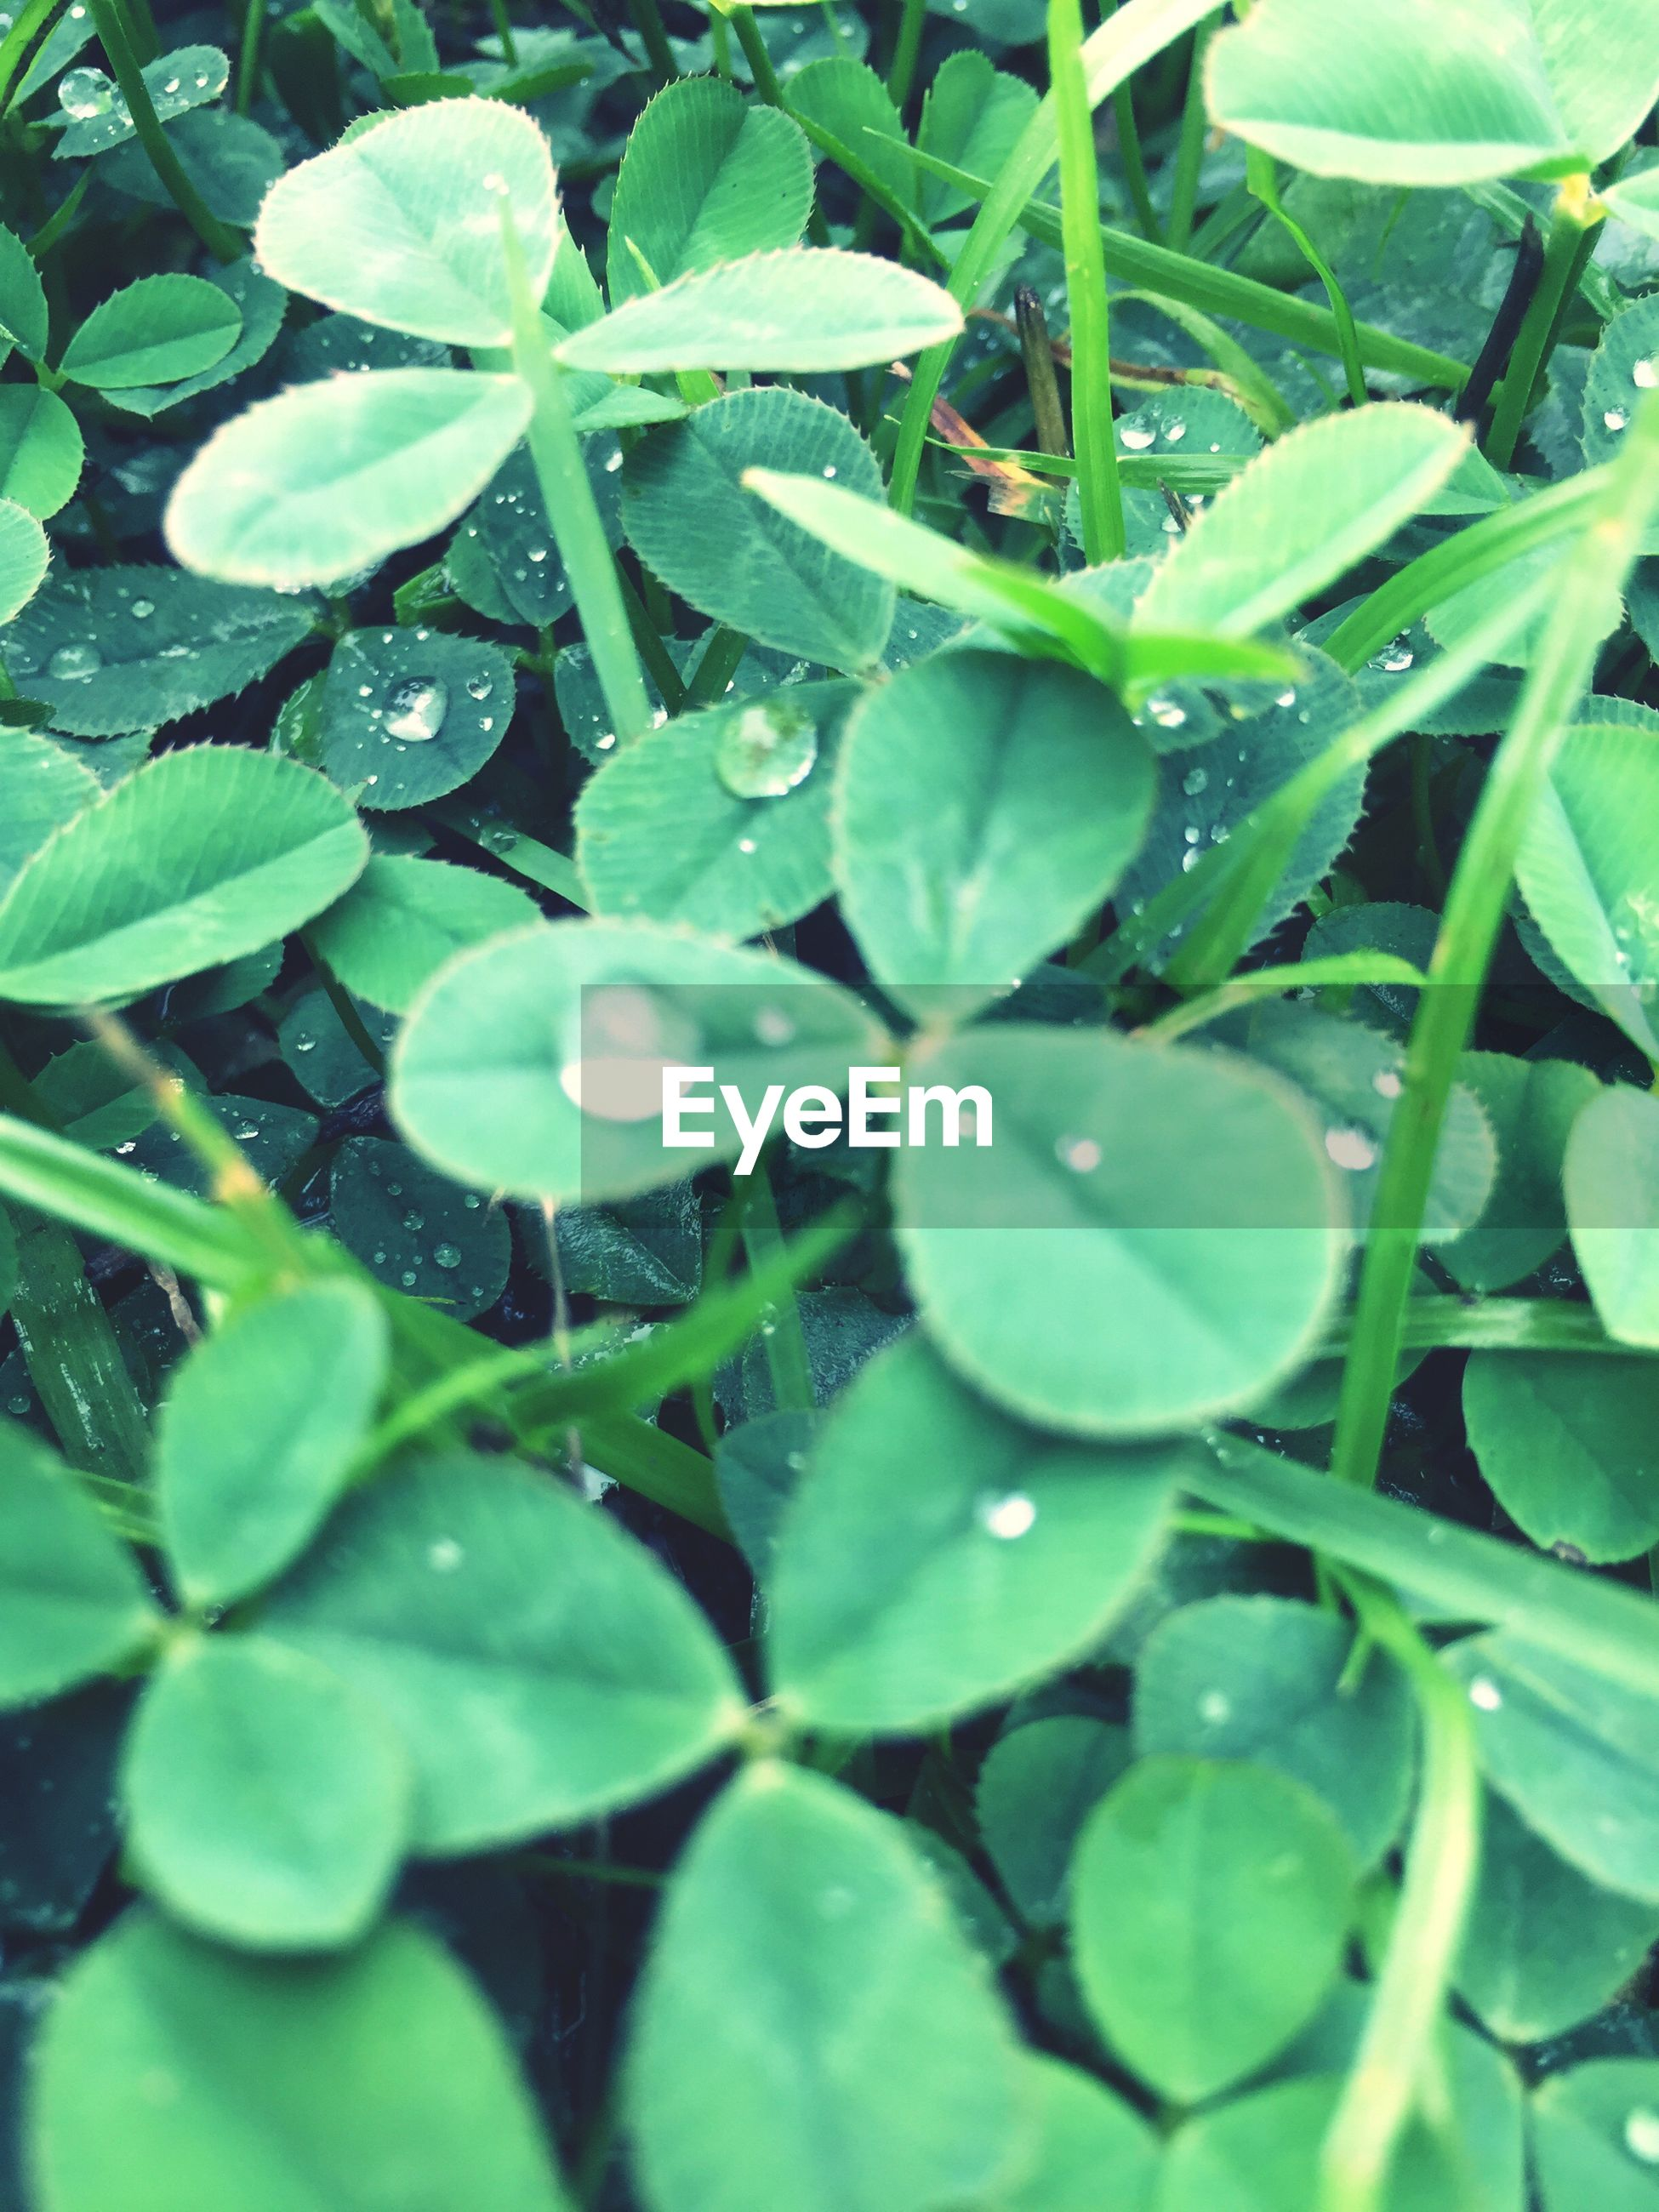 leaf, green color, growth, plant, full frame, nature, drop, backgrounds, freshness, day, outdoors, beauty in nature, water, no people, fragility, close-up